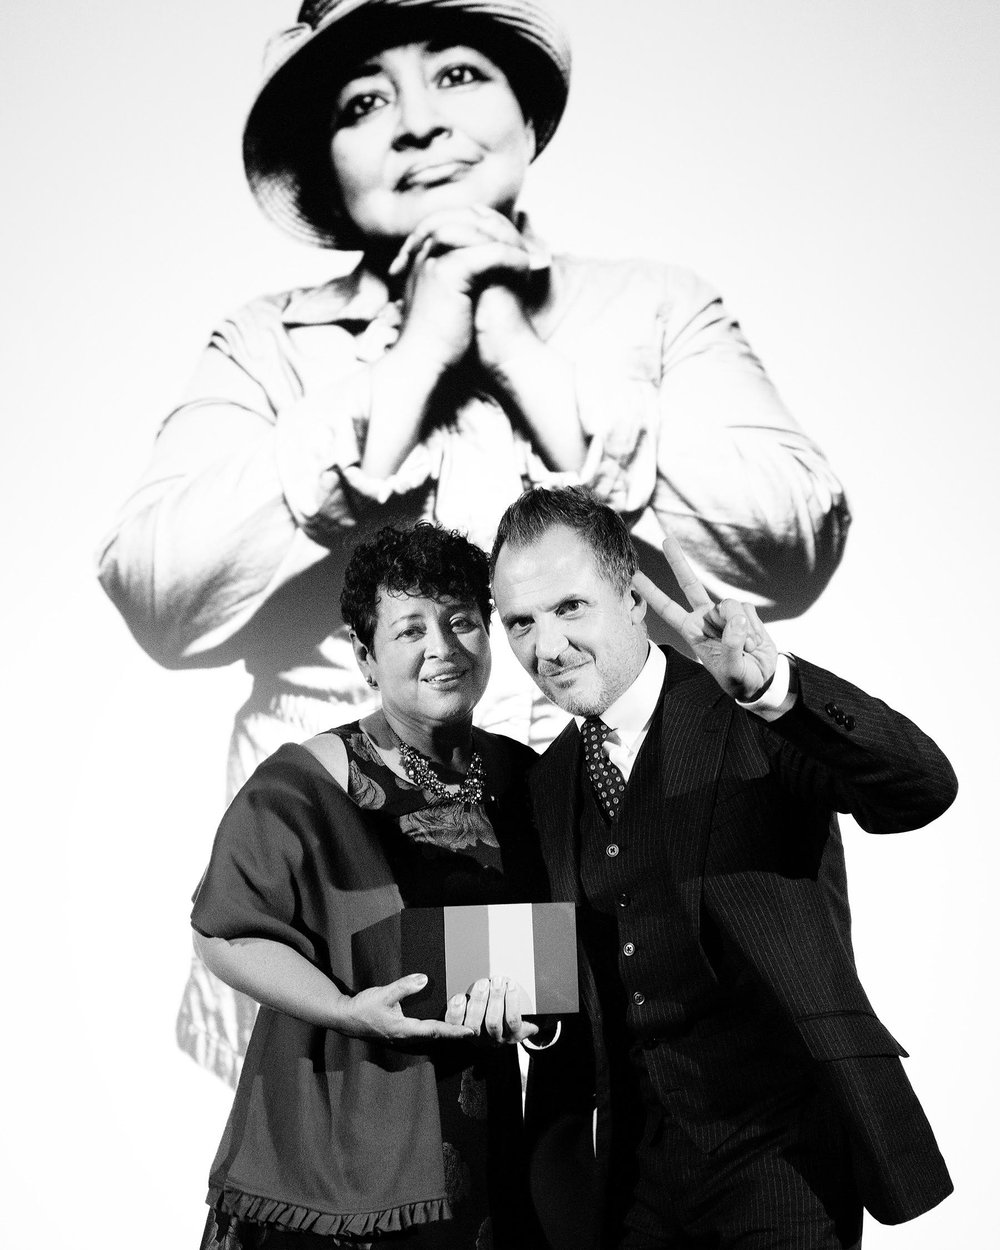 TPP 2018 Gala - Alina Diaz with Platon by Colin Hughes.jpg